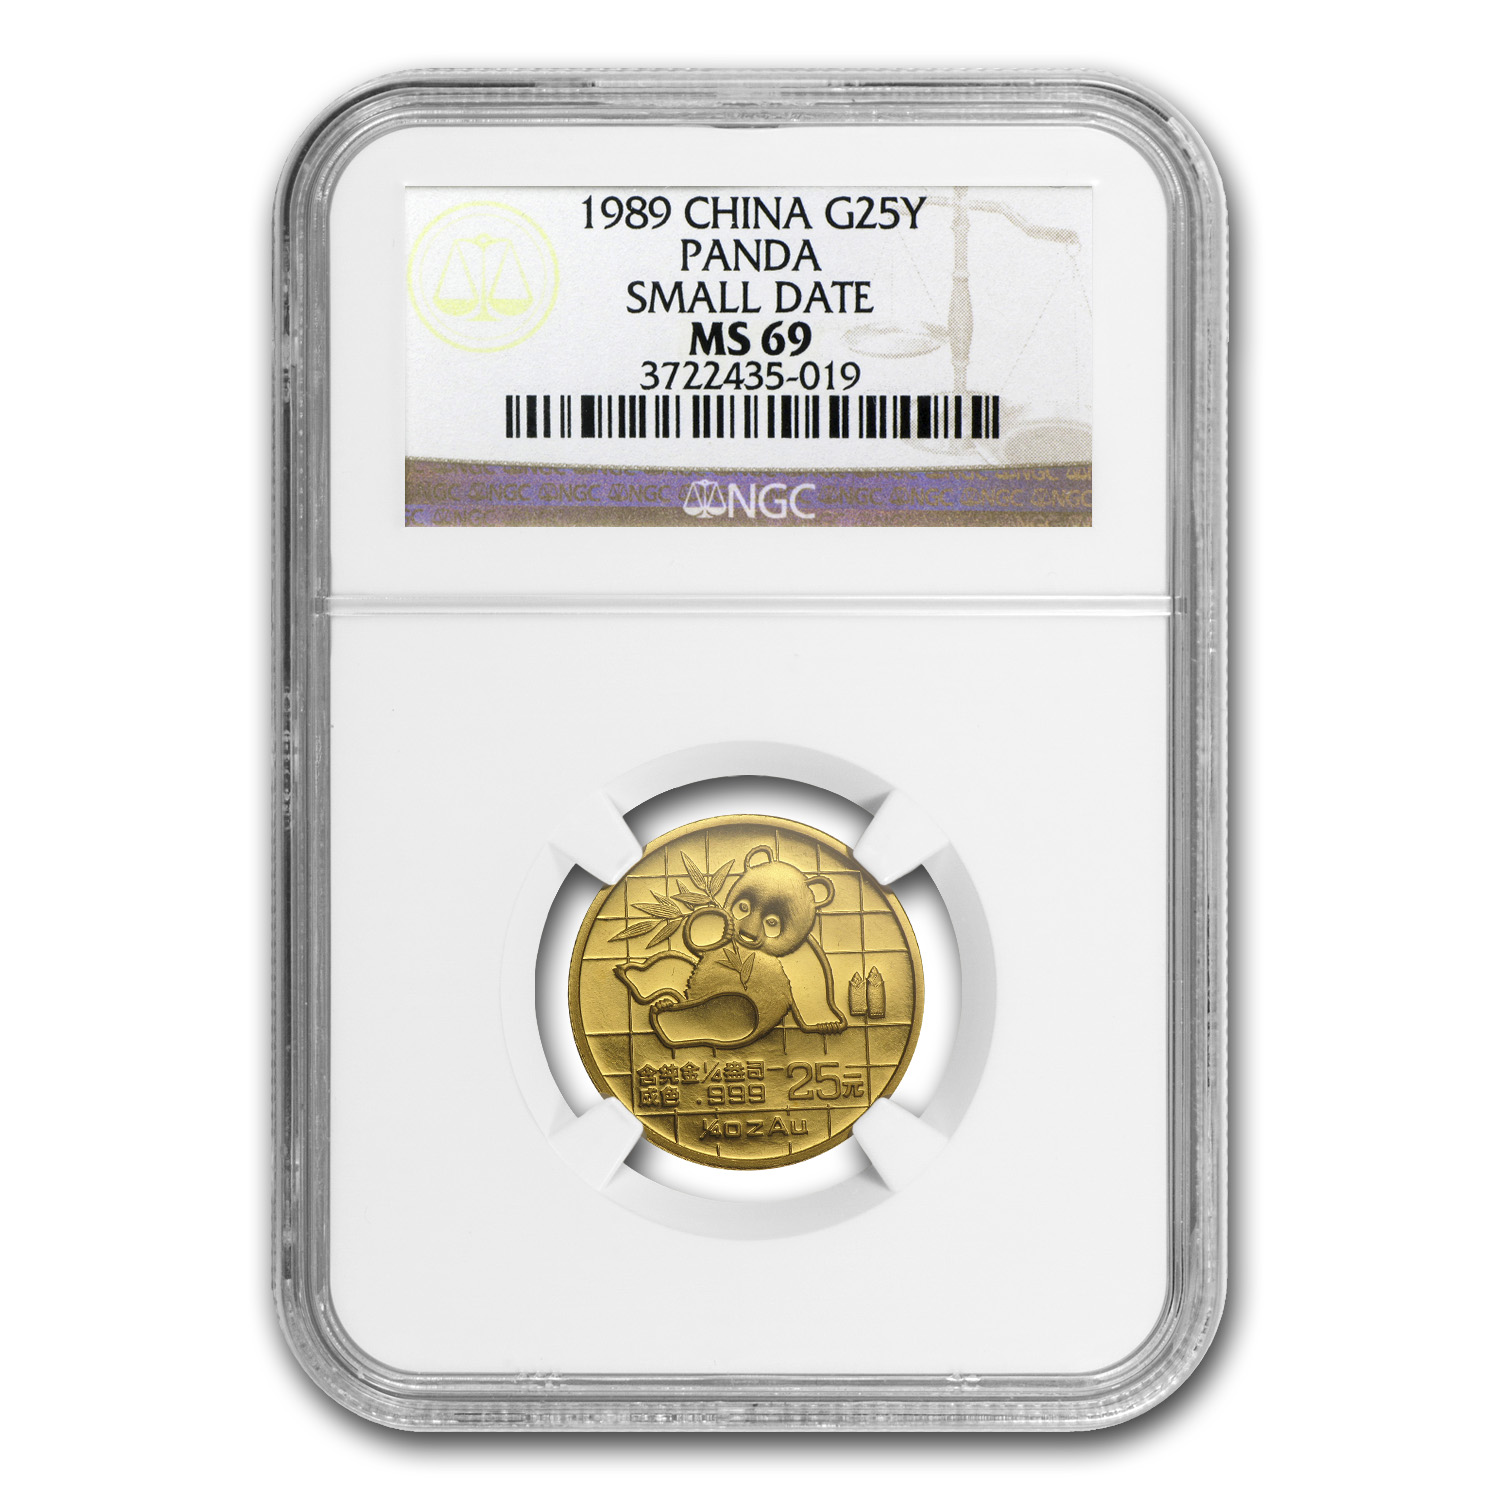 1989 China 1/4 oz Gold Panda Small Date MS-69 NGC